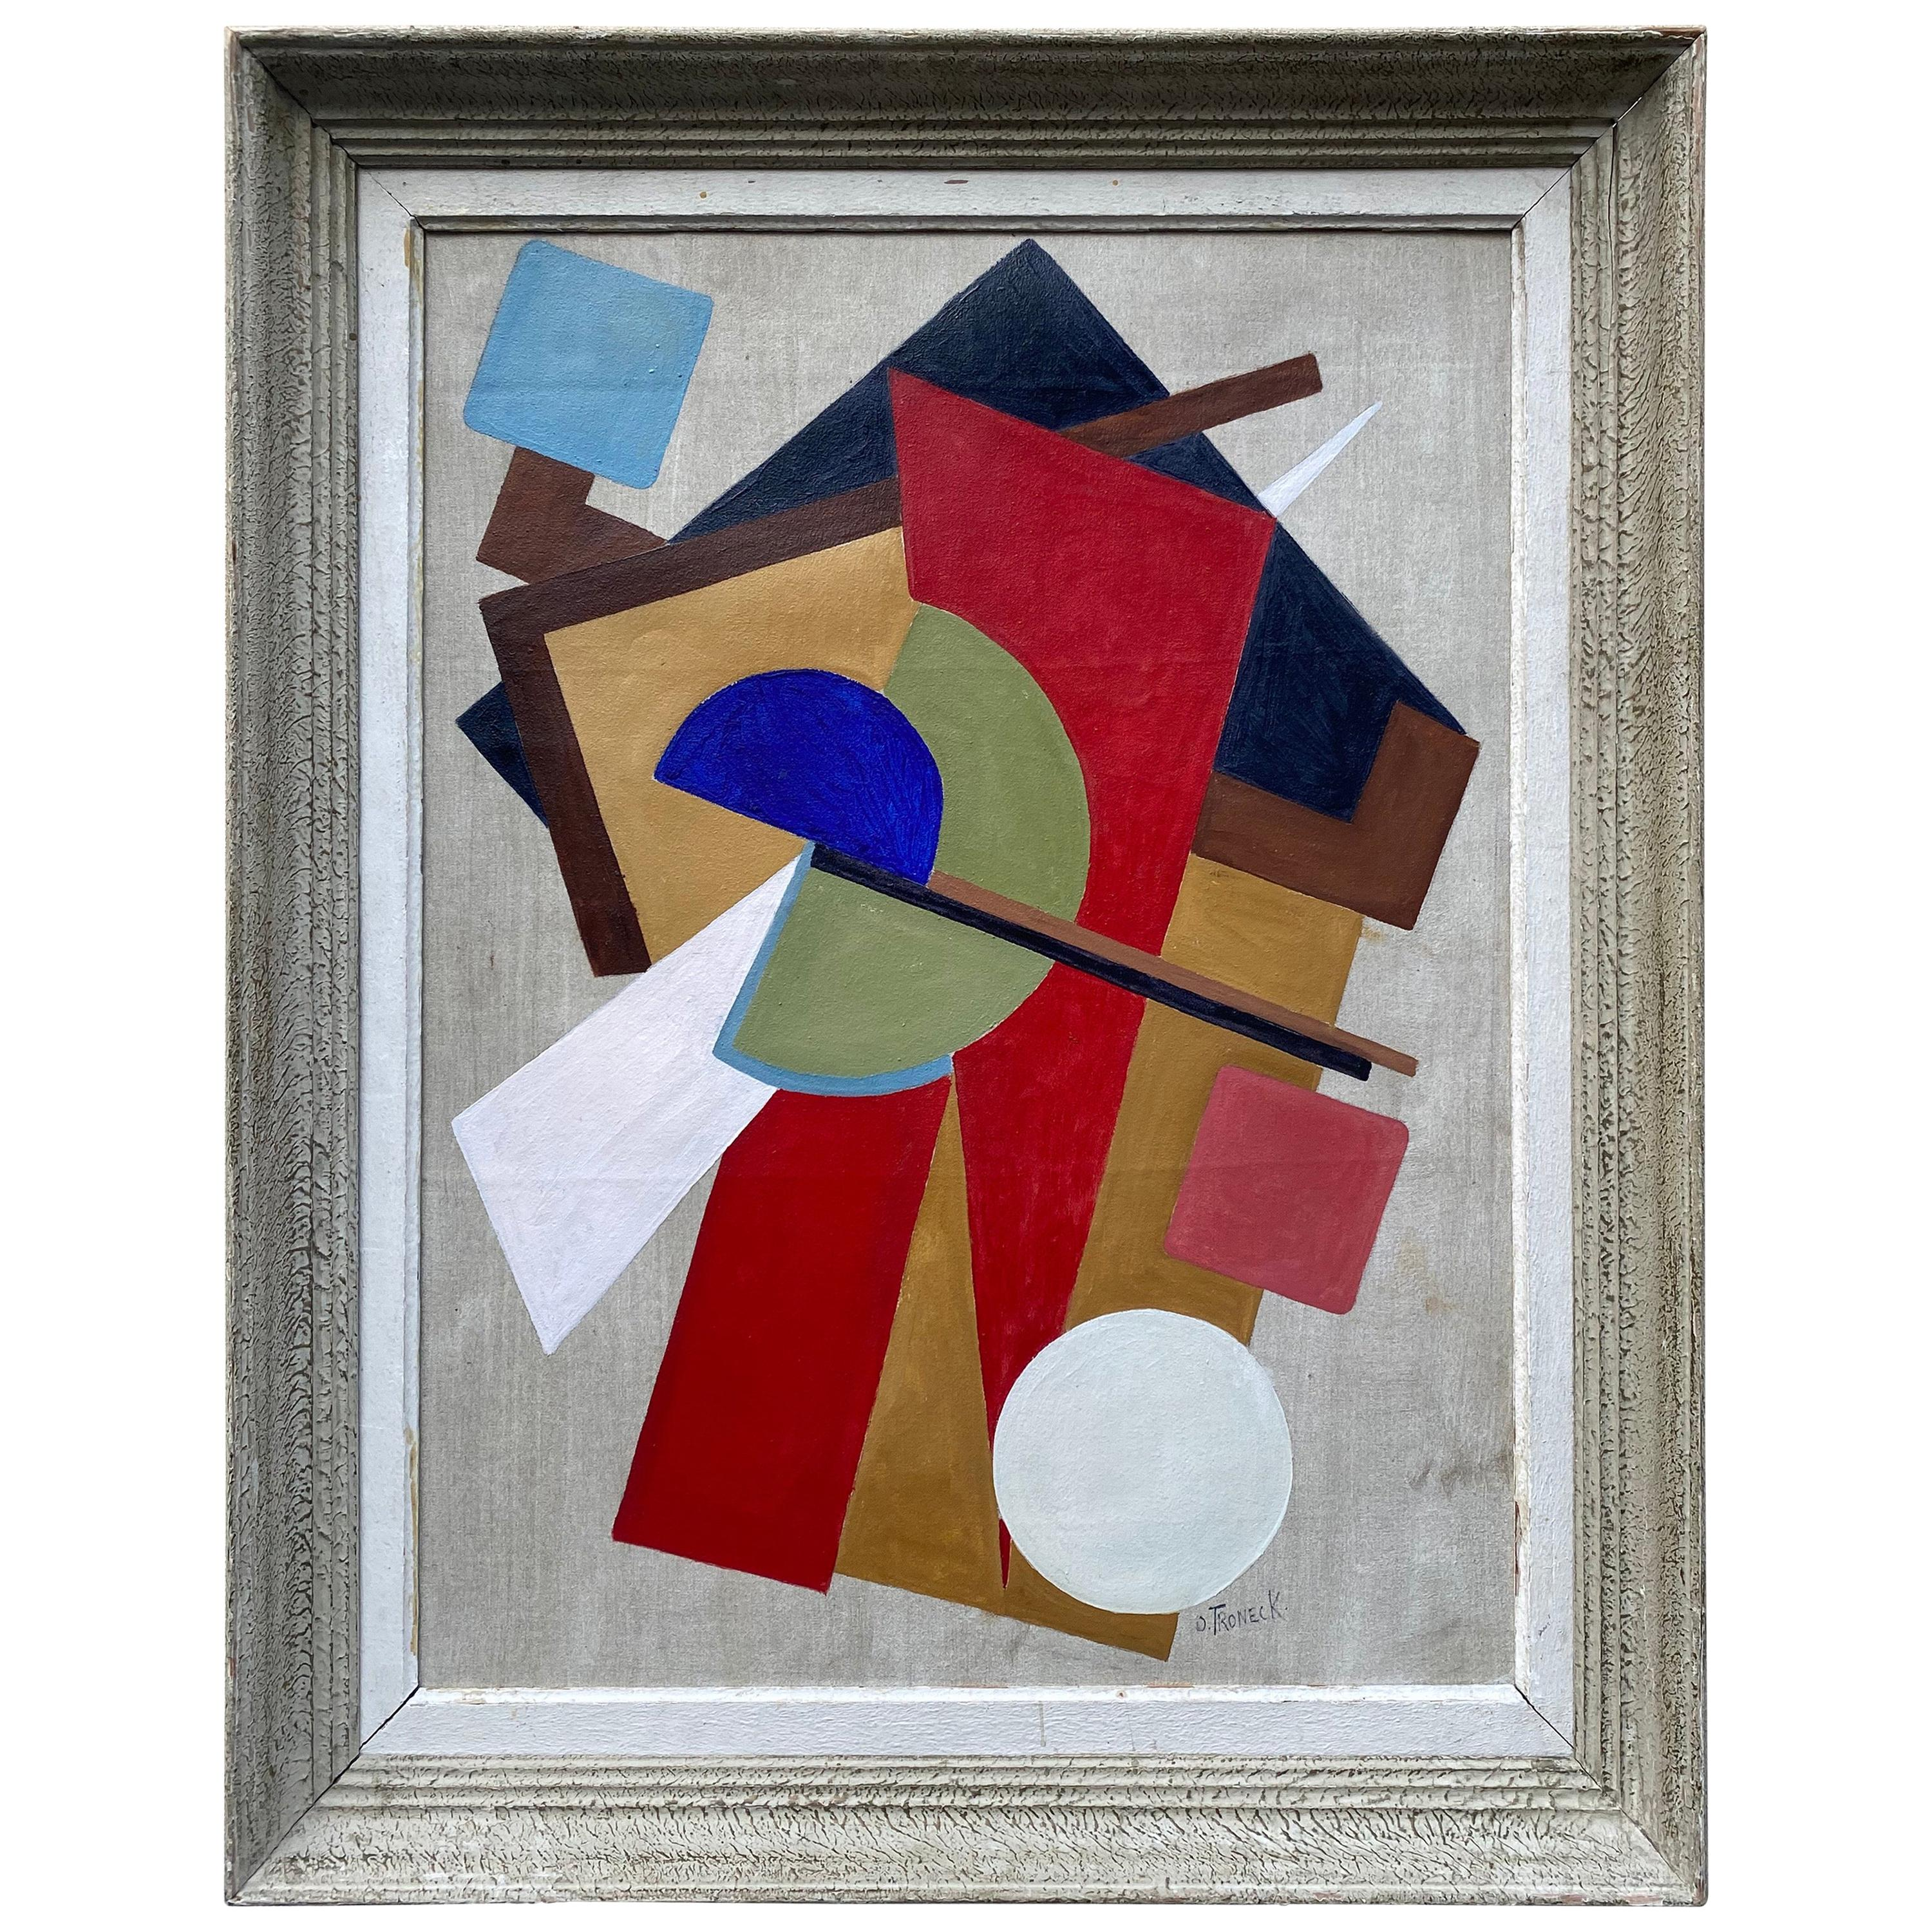 Constructivism Painting by Oscar Troneck